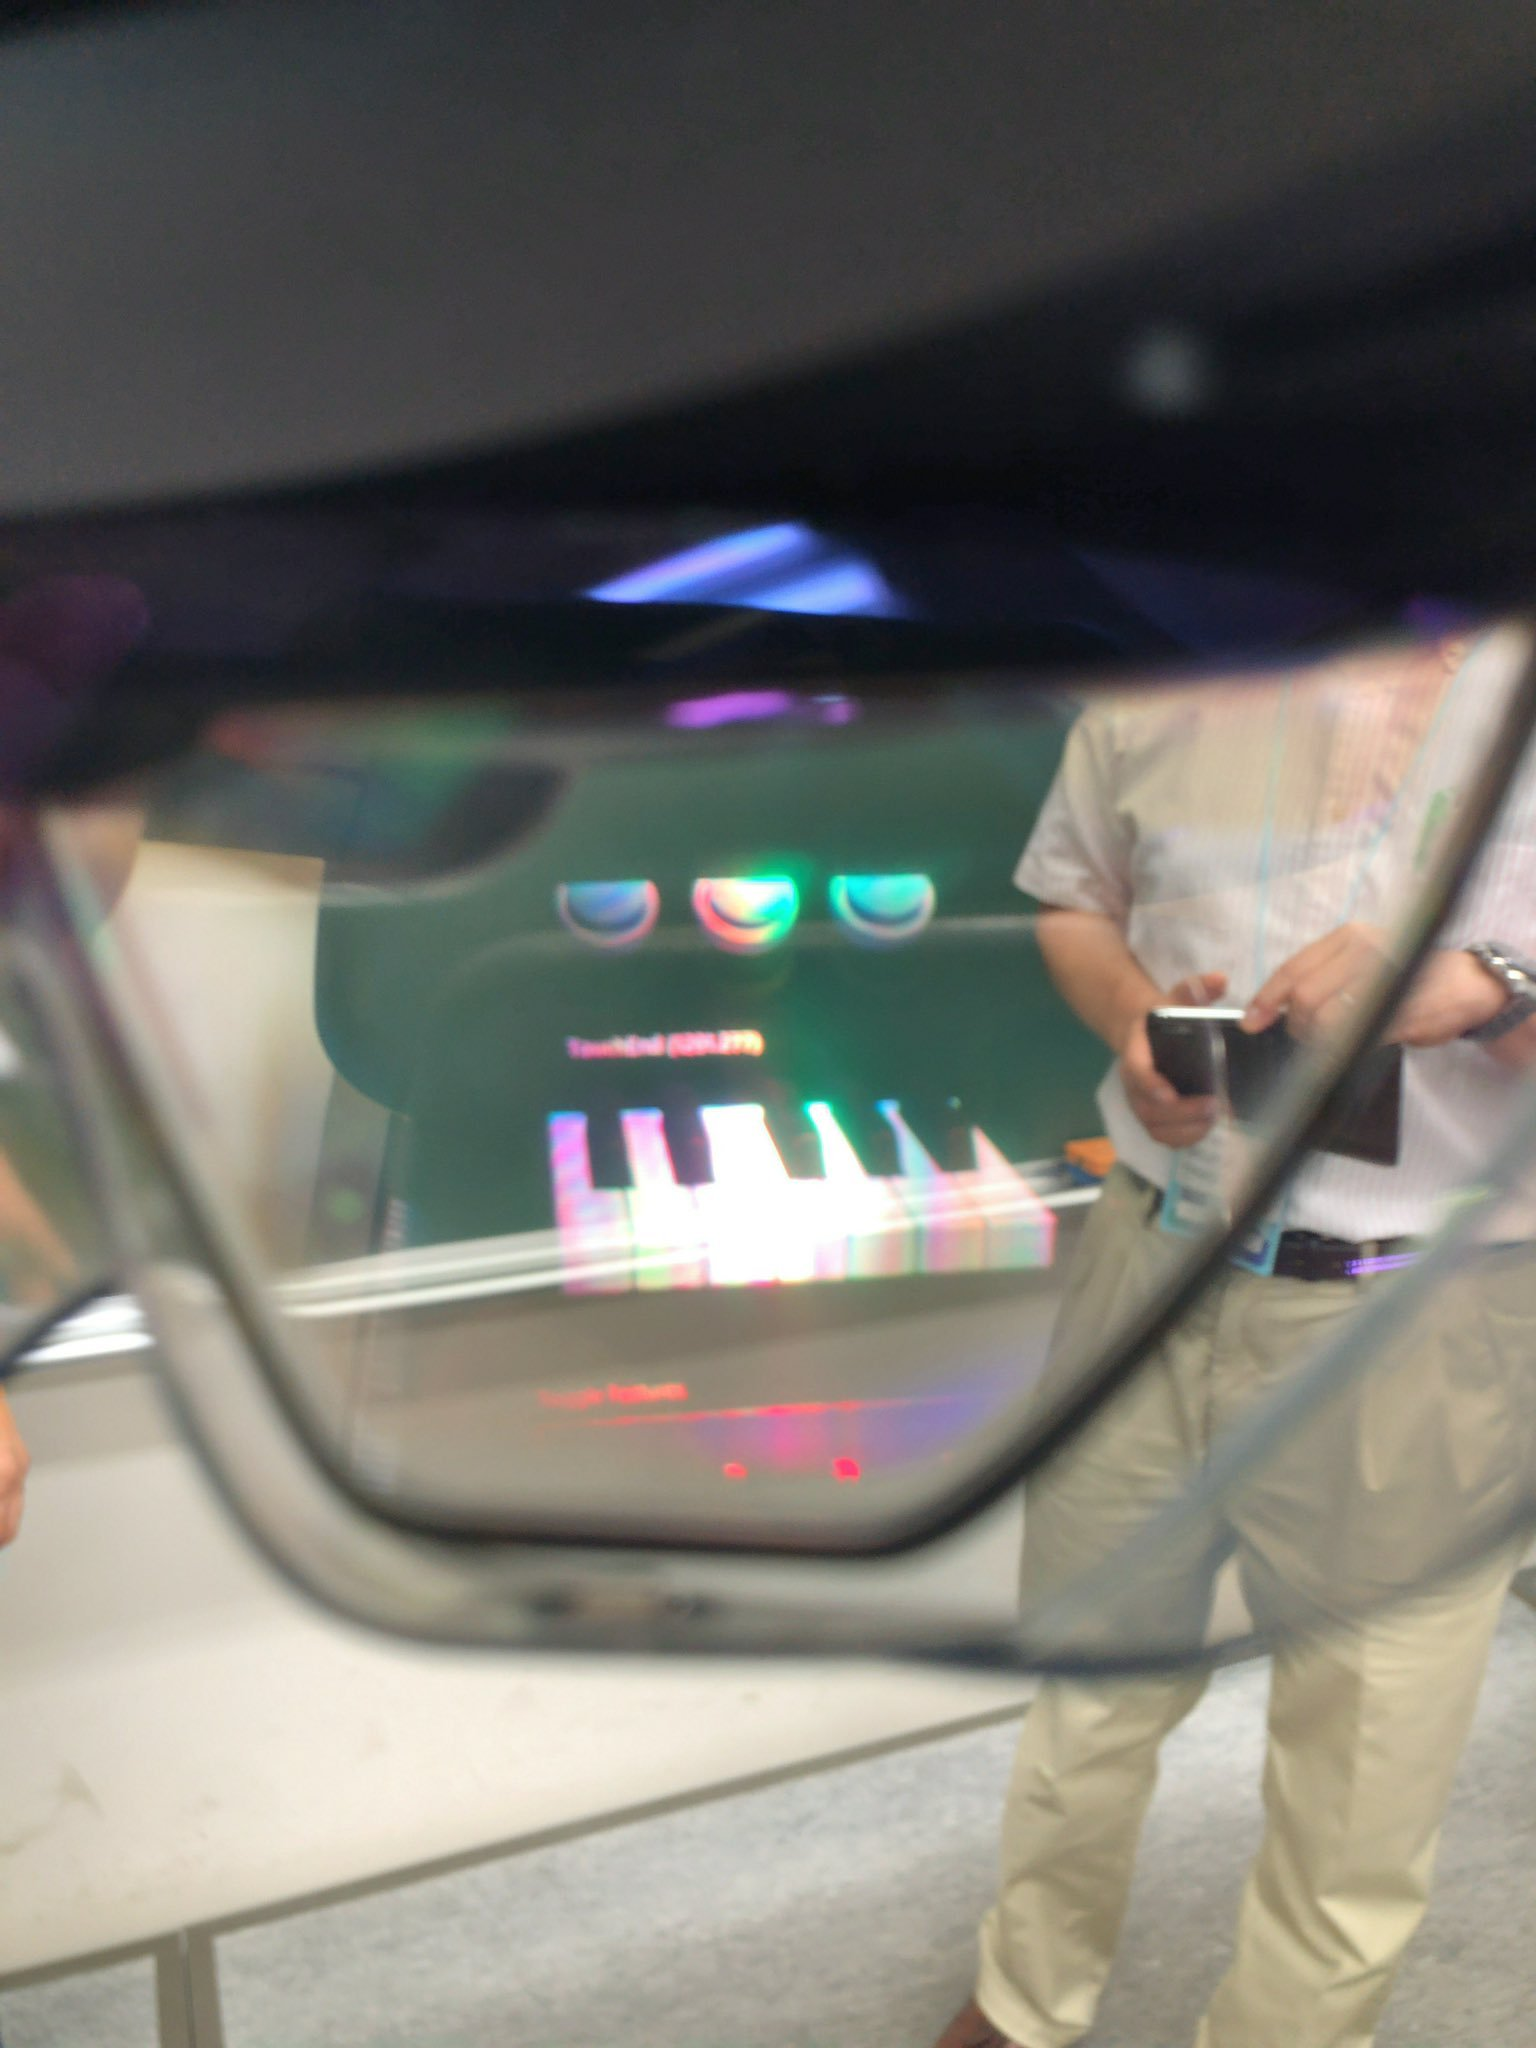 New HoloLens 2 owners reporting display colour issues 3